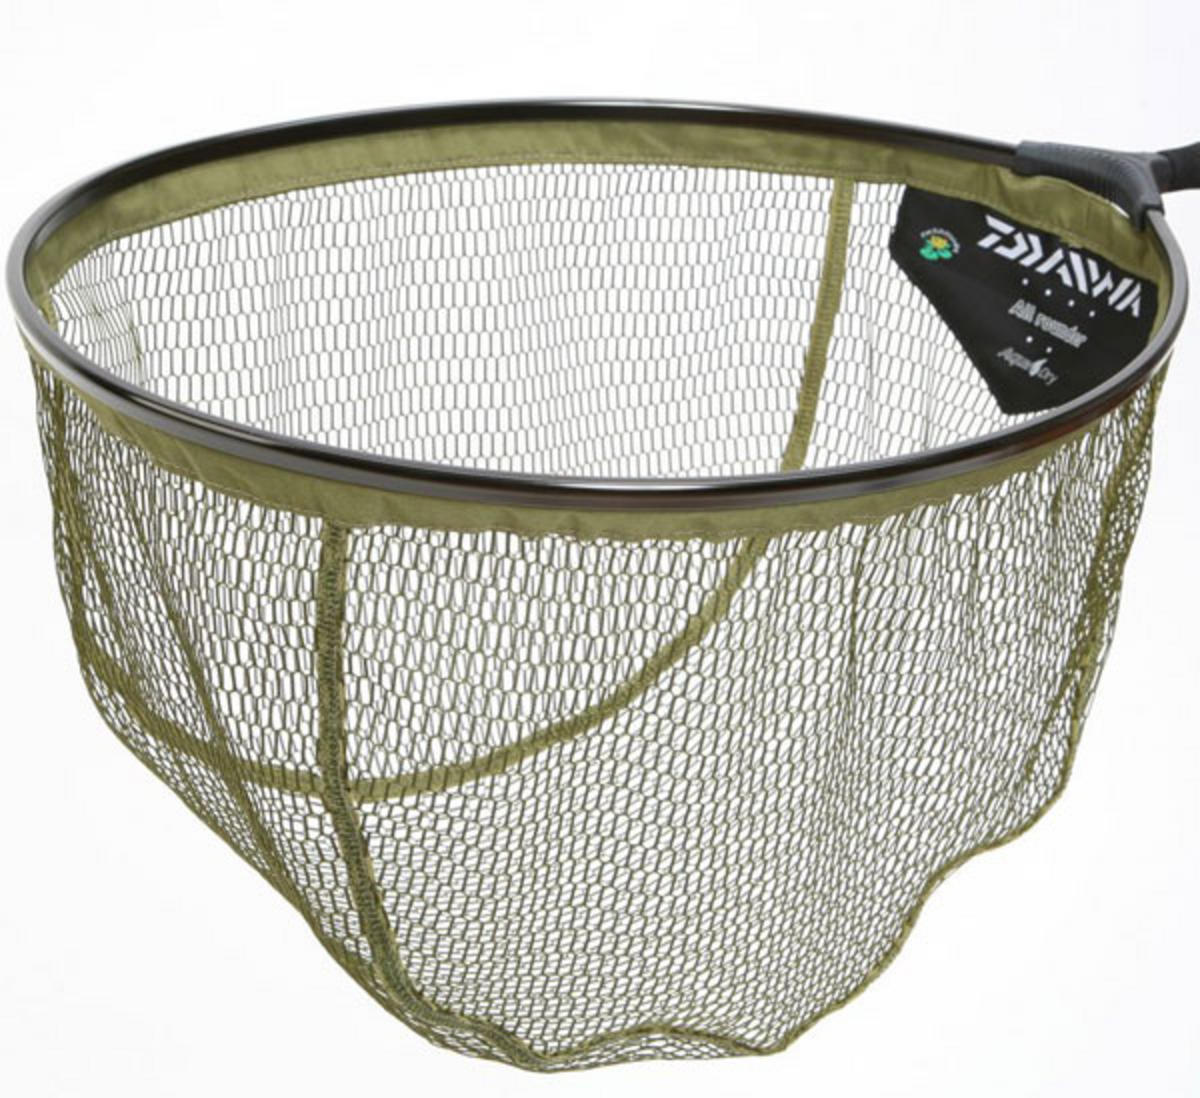 NEW DAIWA ALL ROUND LANDING NET HEAD 50CM MODEL NO. DARLN1